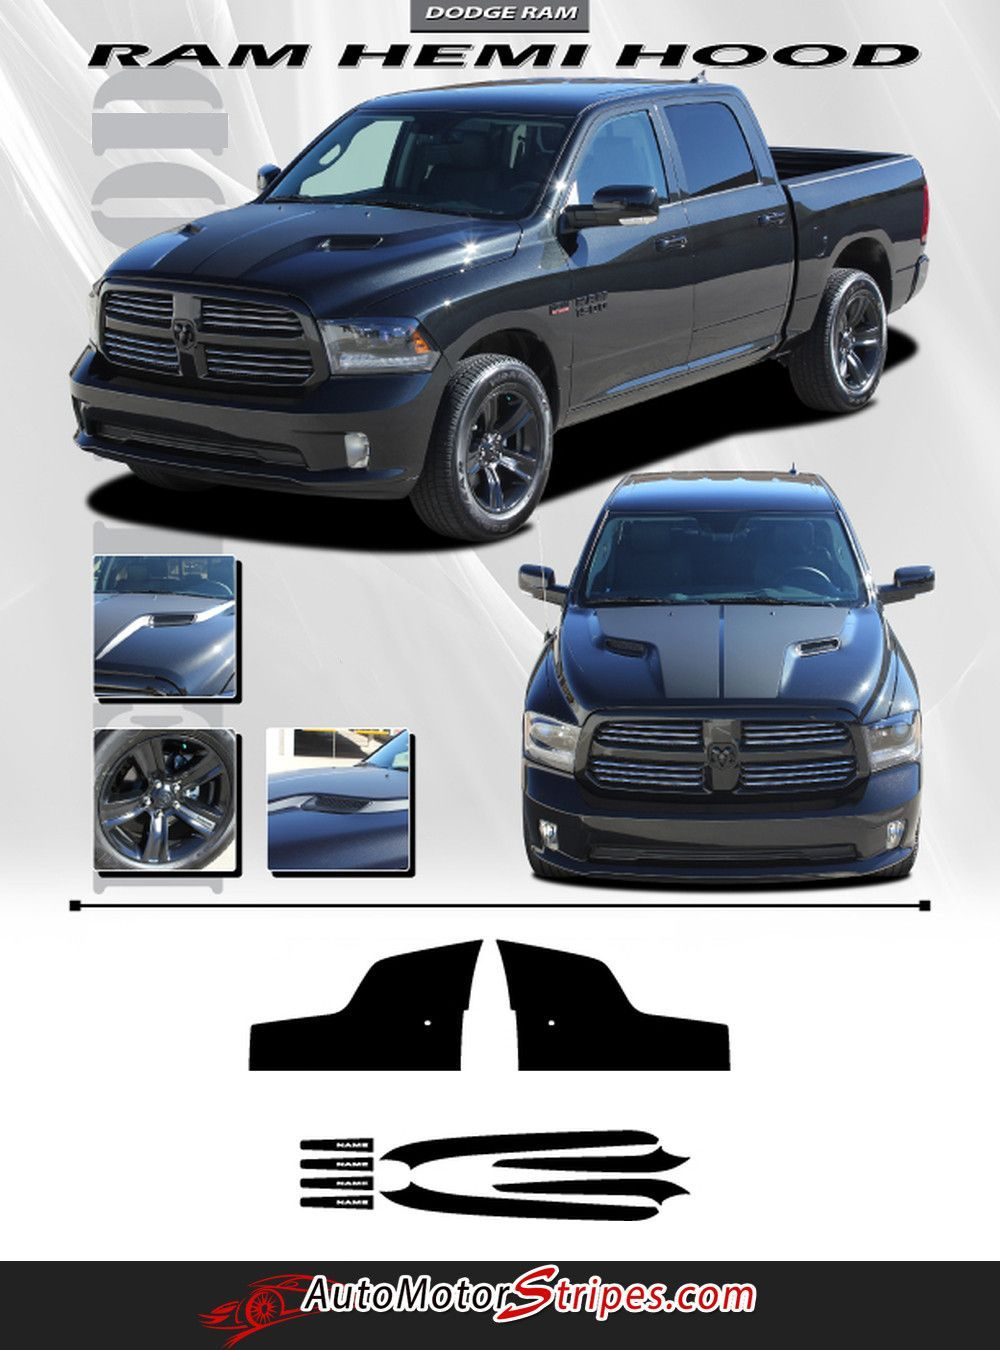 Vehicle Specific Style Dodge Ram Truck Hemi Hood Blackout Accent 2005 Silver 1500 Vinyl Graphic Stripe Decals Year Fitment 2009 2010 2011 2012 2013 2014 2015 2016 Contents